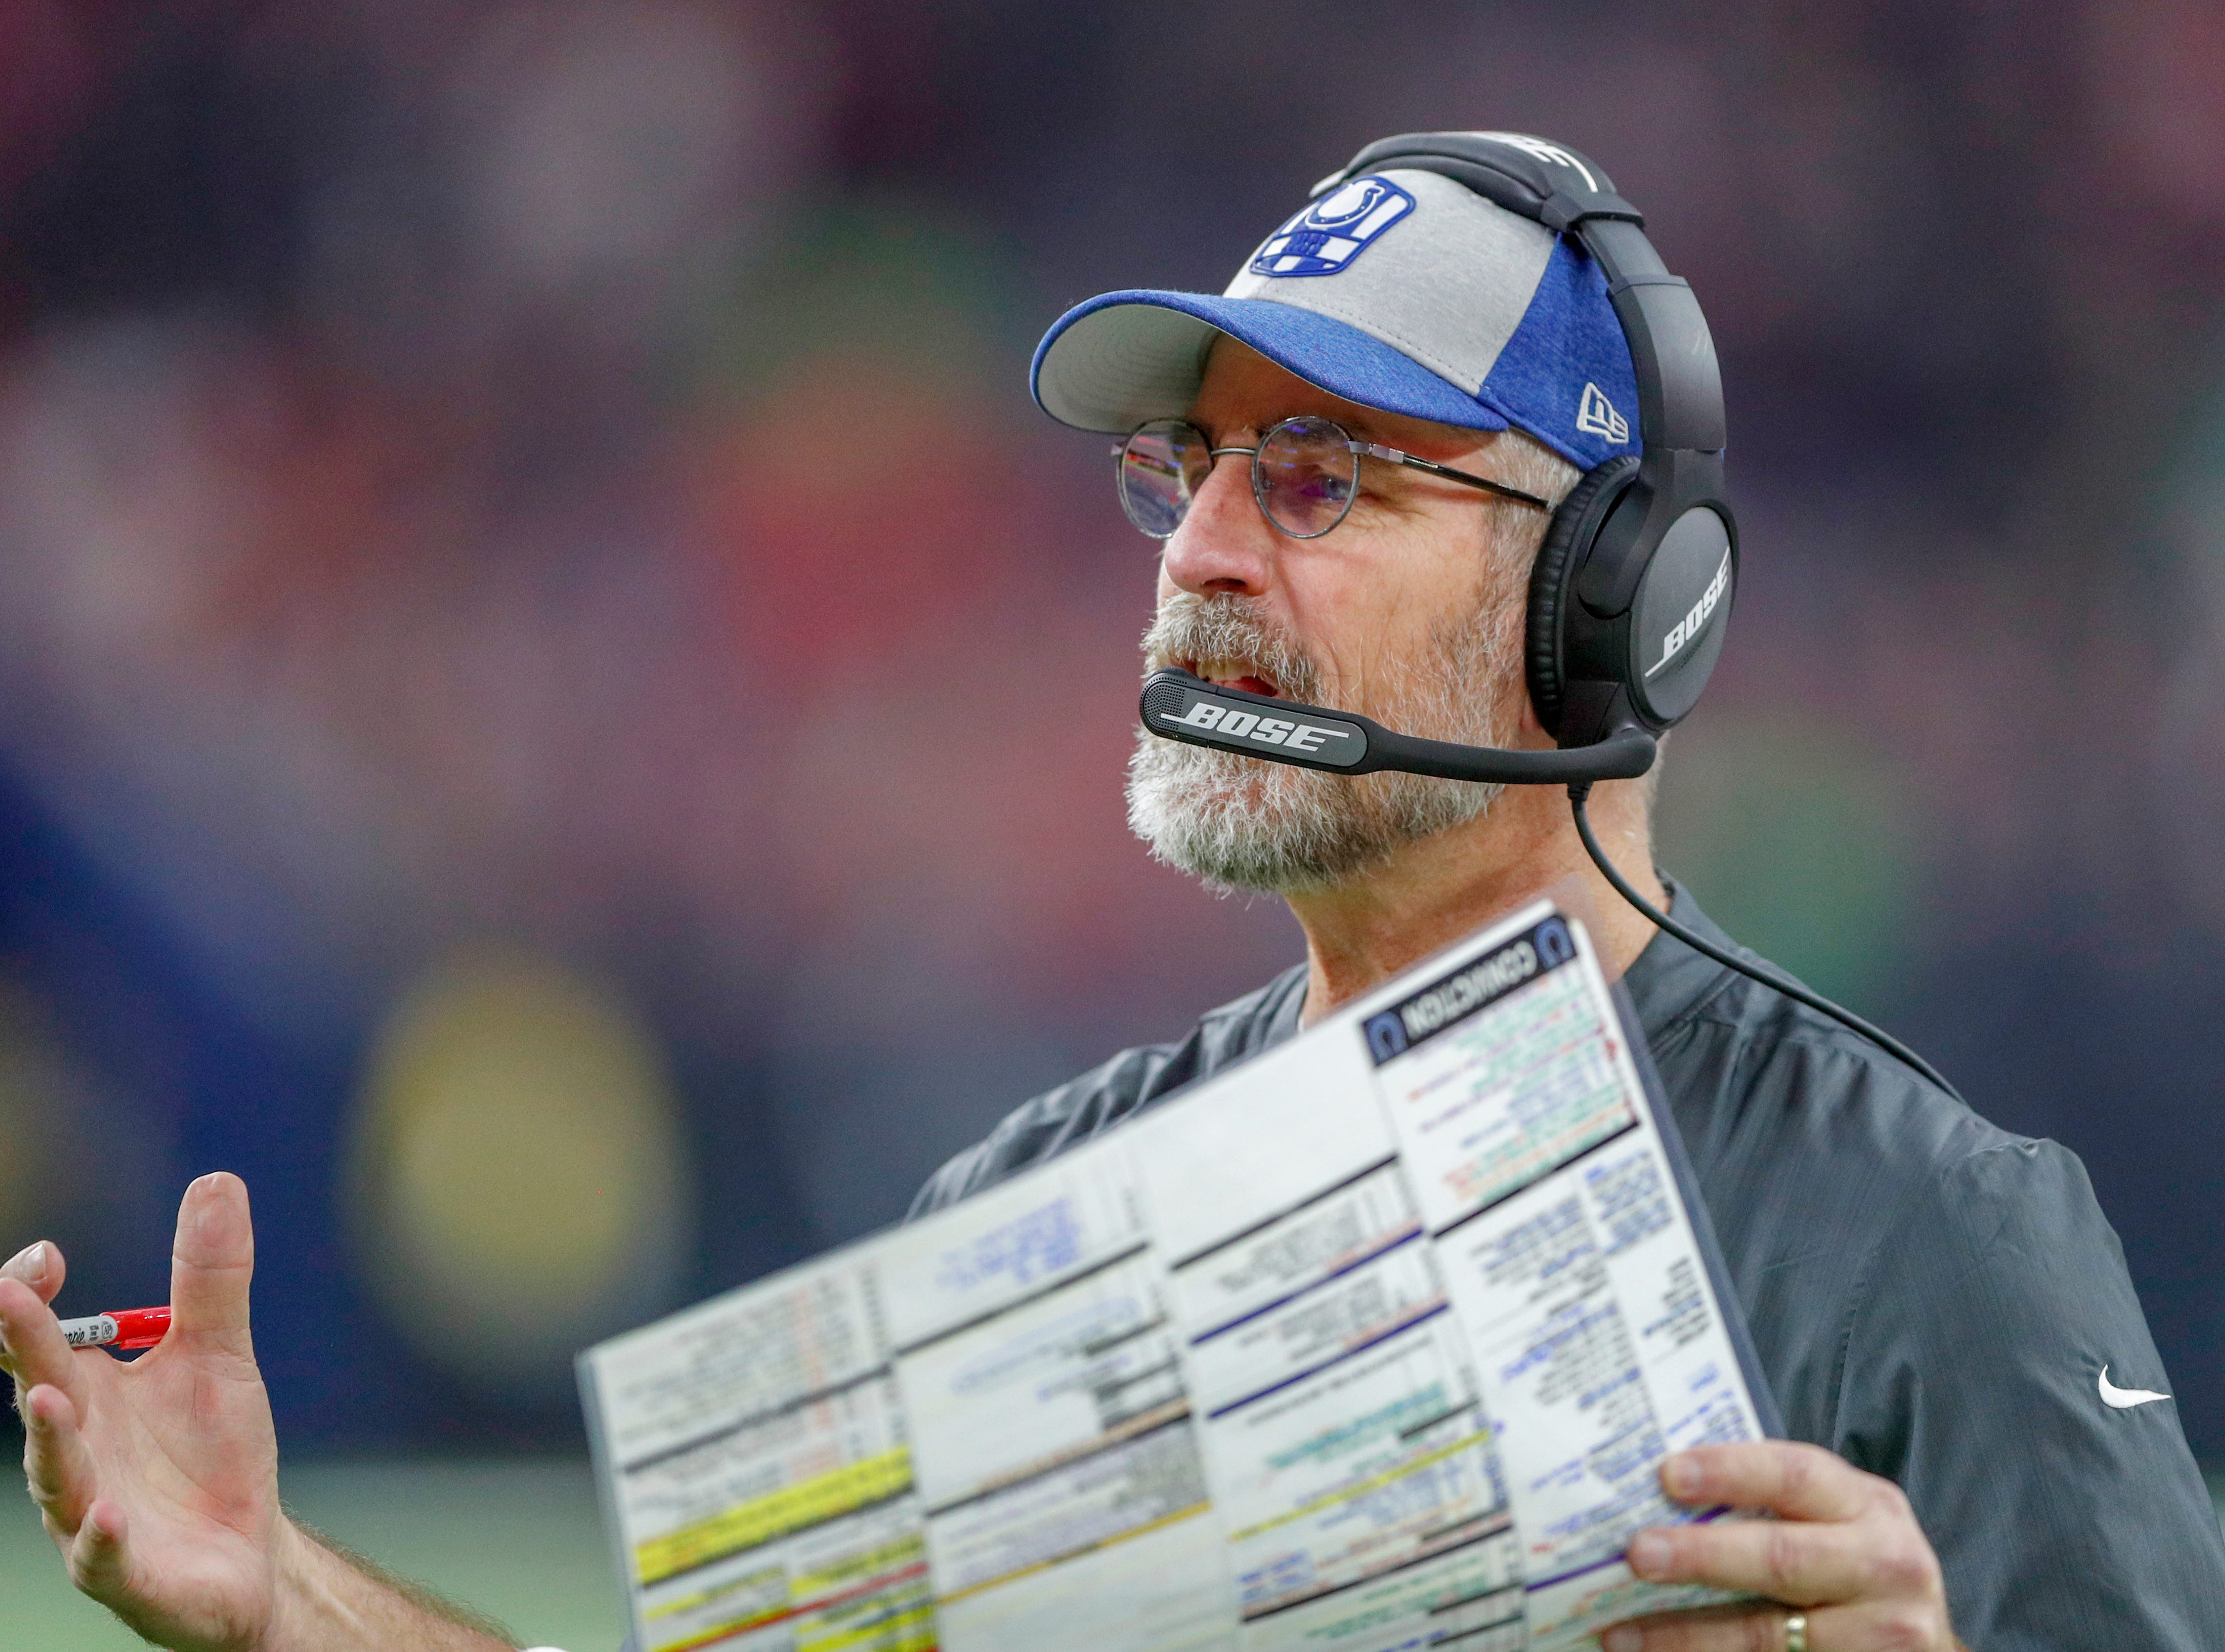 Indianapolis Colts head coach Frank Reich watches the action on the field against the Houston Texans in the fourth quarter at NRG Stadium in Houston on Sunday, Dec. 9, 2018.